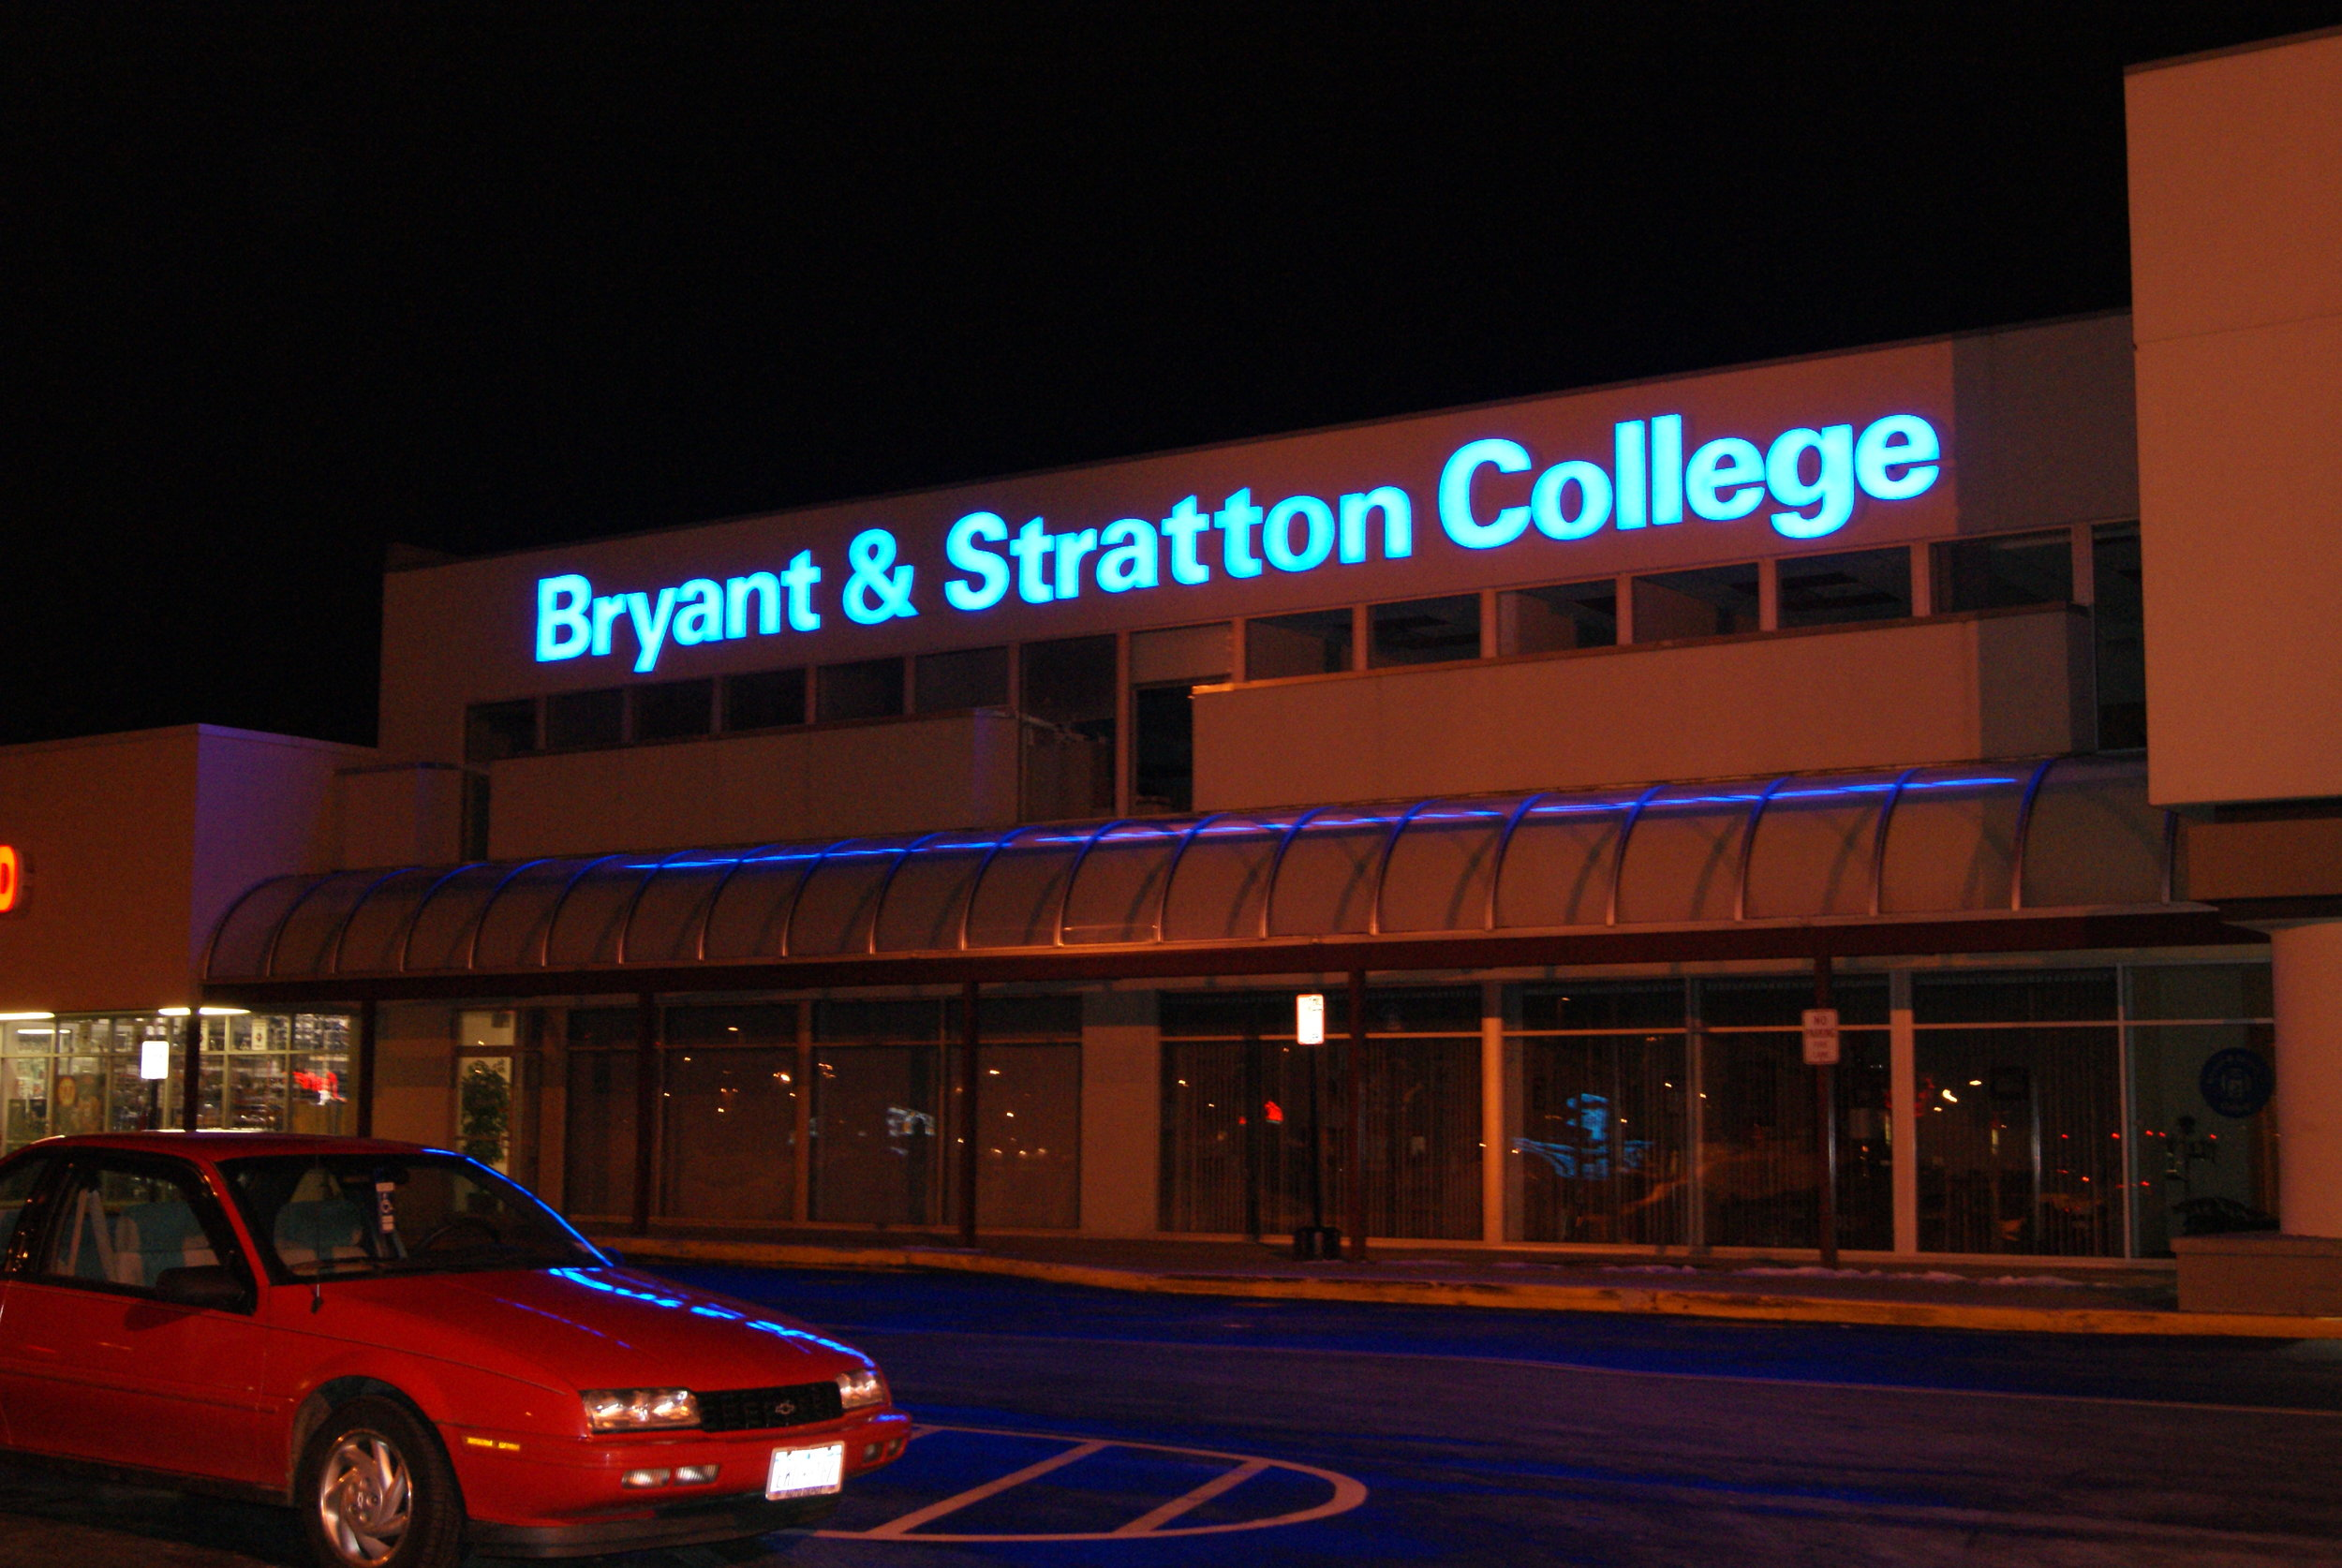 Bryant & Stratton night 2.JPG